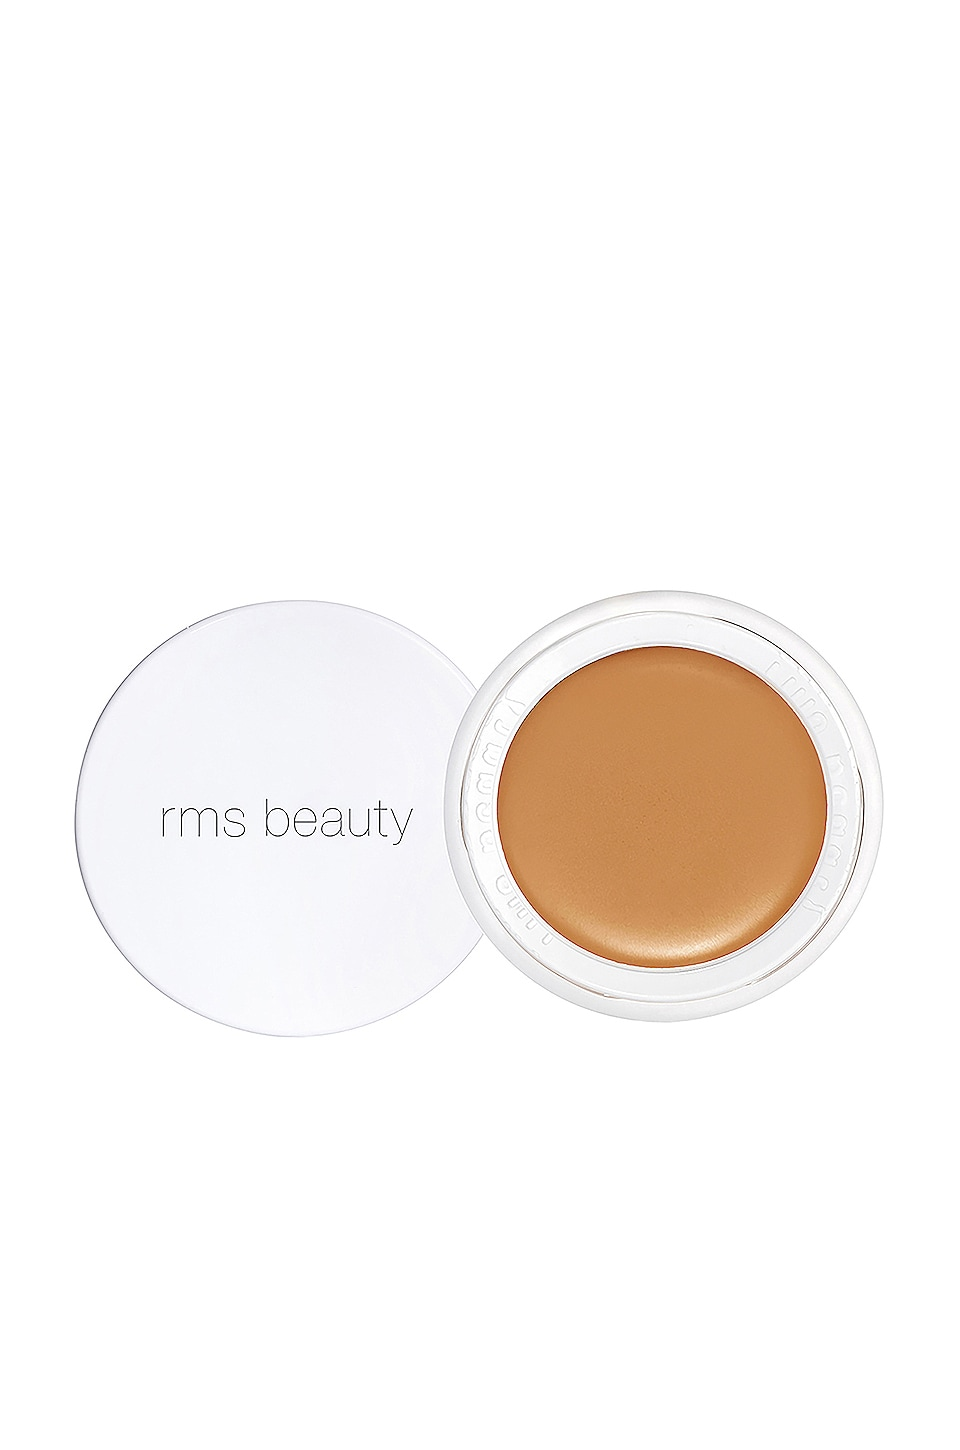 RMS Beauty Uncover Up in 55